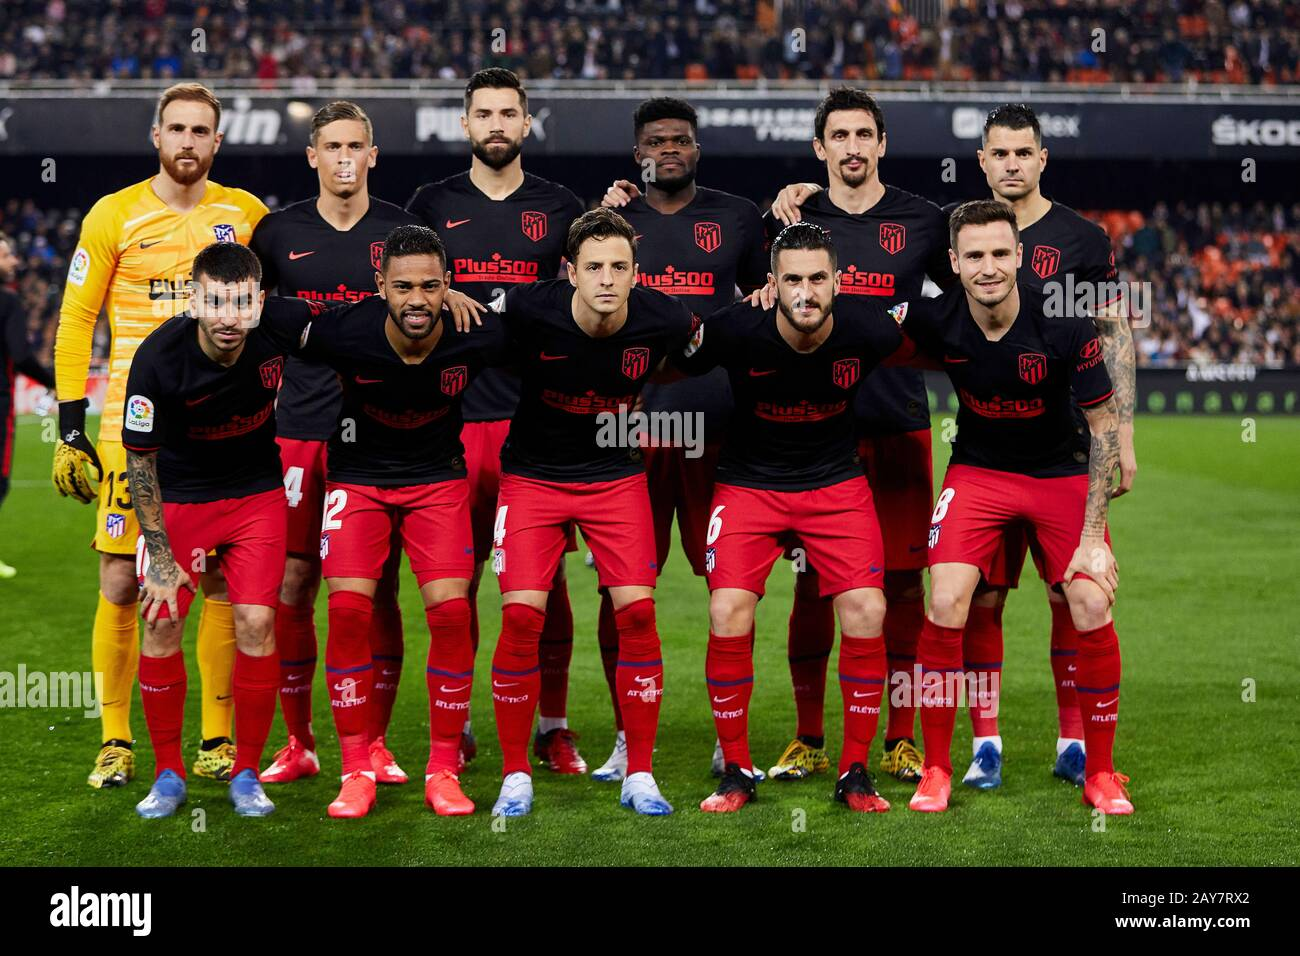 Mestalla Valencia Spain 14th Feb 2020 La Liga Football Valencia Versus Atletico Madrid Atletico De Madrid Squad Lines Up Prior To The Game Credit Action Plus Sports Alamy Live News Stock Photo